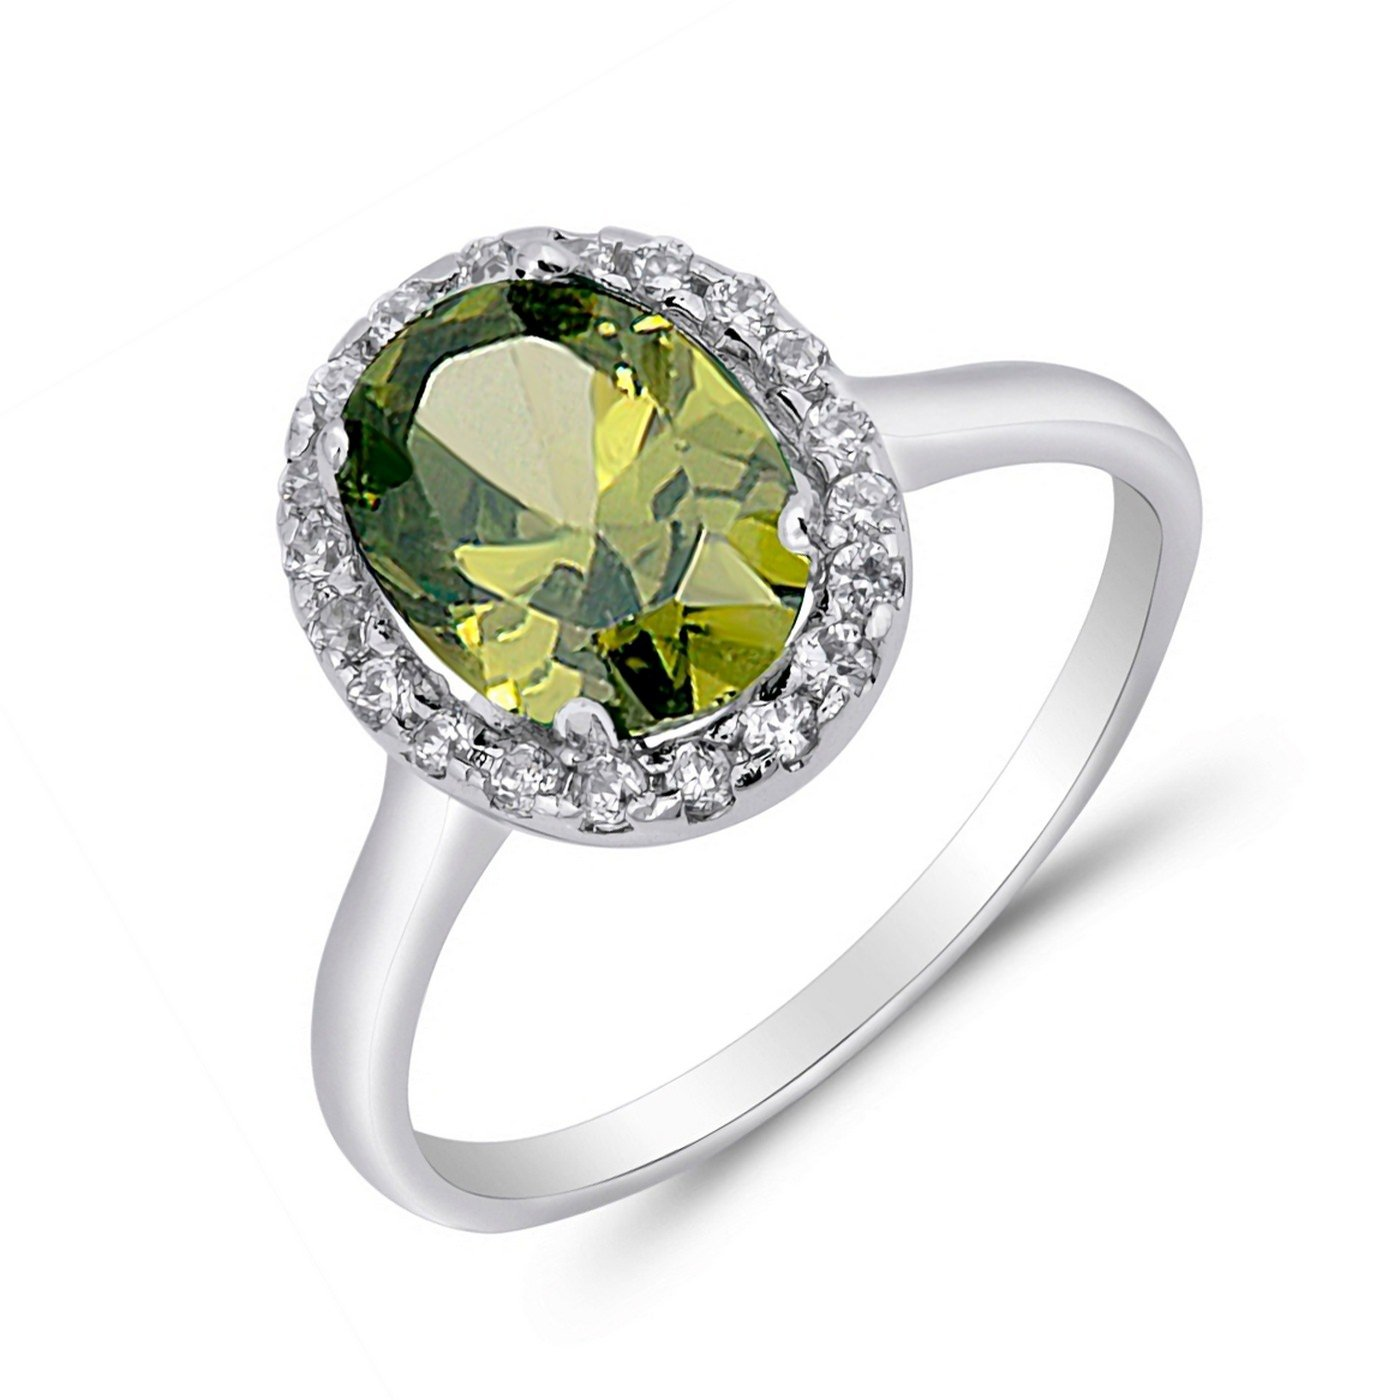 Simulated Peridot Cubic Zirconia Oval Round 925 Sterling Silver Solitaire Ring Sizes 5-10